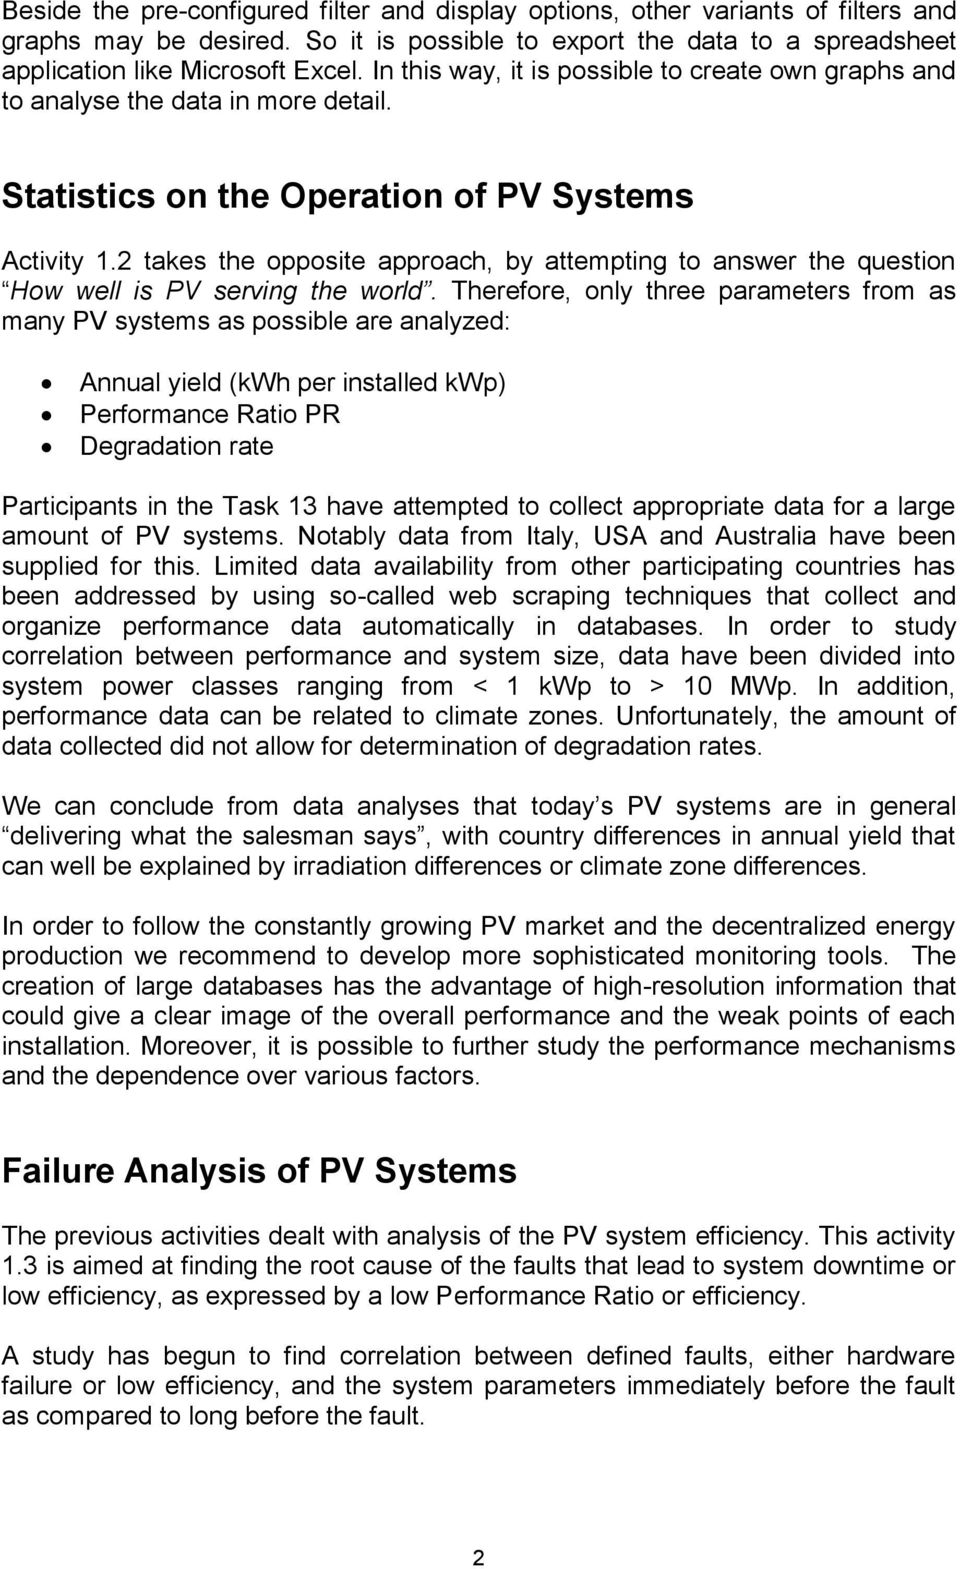 2 takes the opposite approach, by attempting to answer the question How well is PV serving the world.